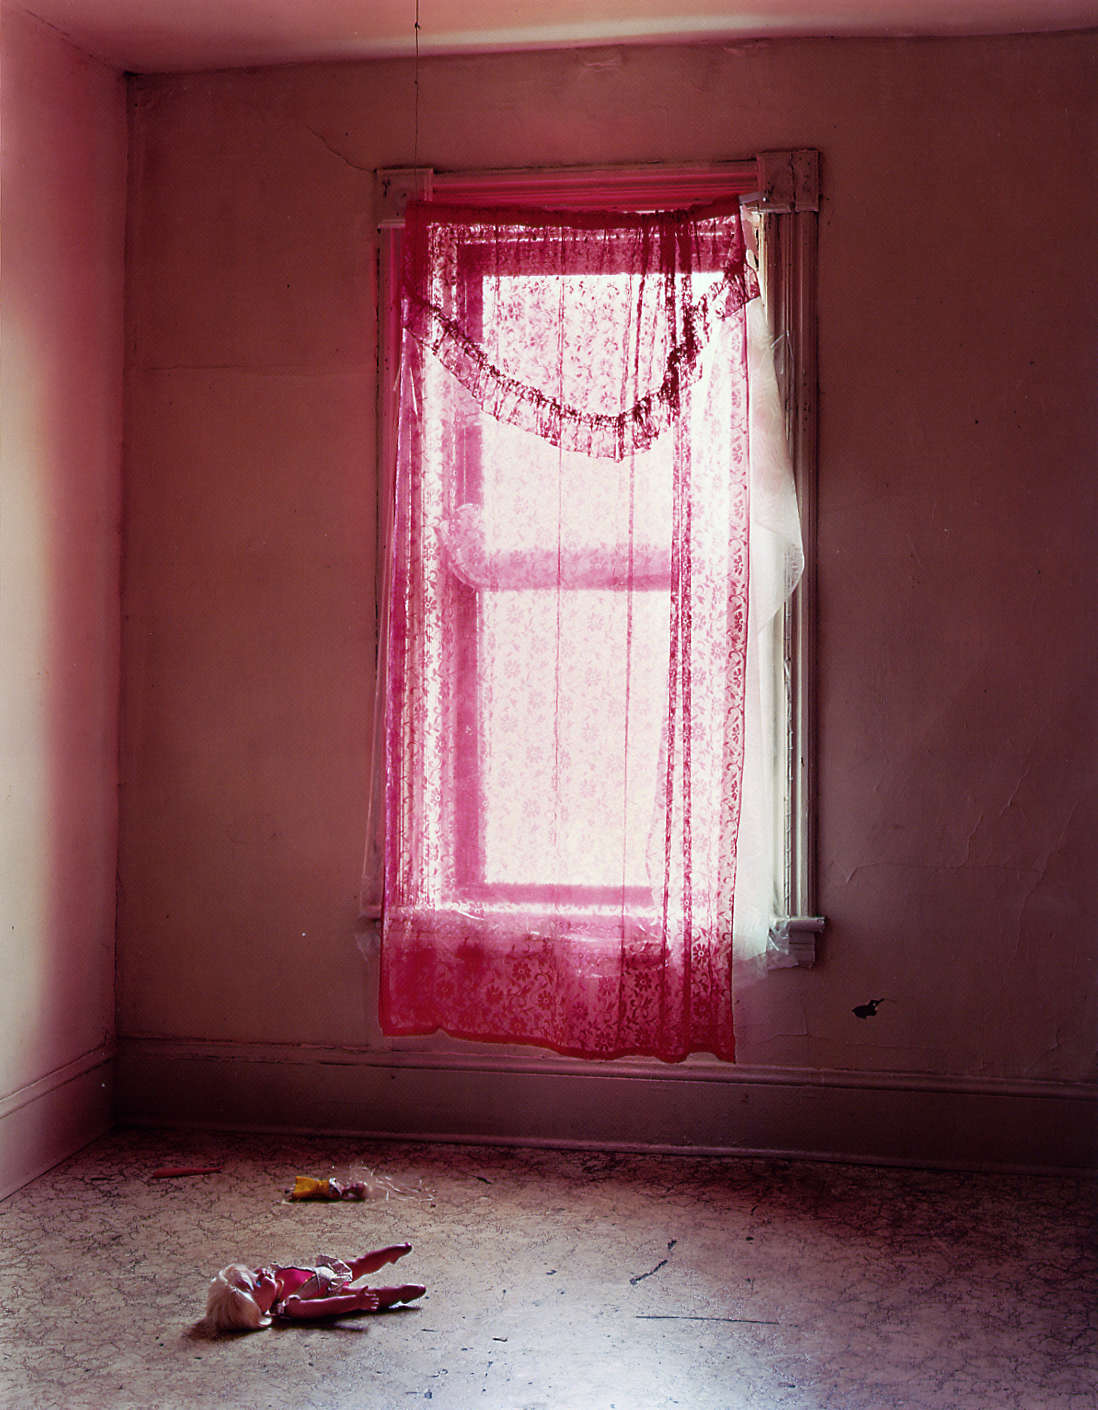 Mitch Epstein, Apartment 201, 398 Main Street, 2001